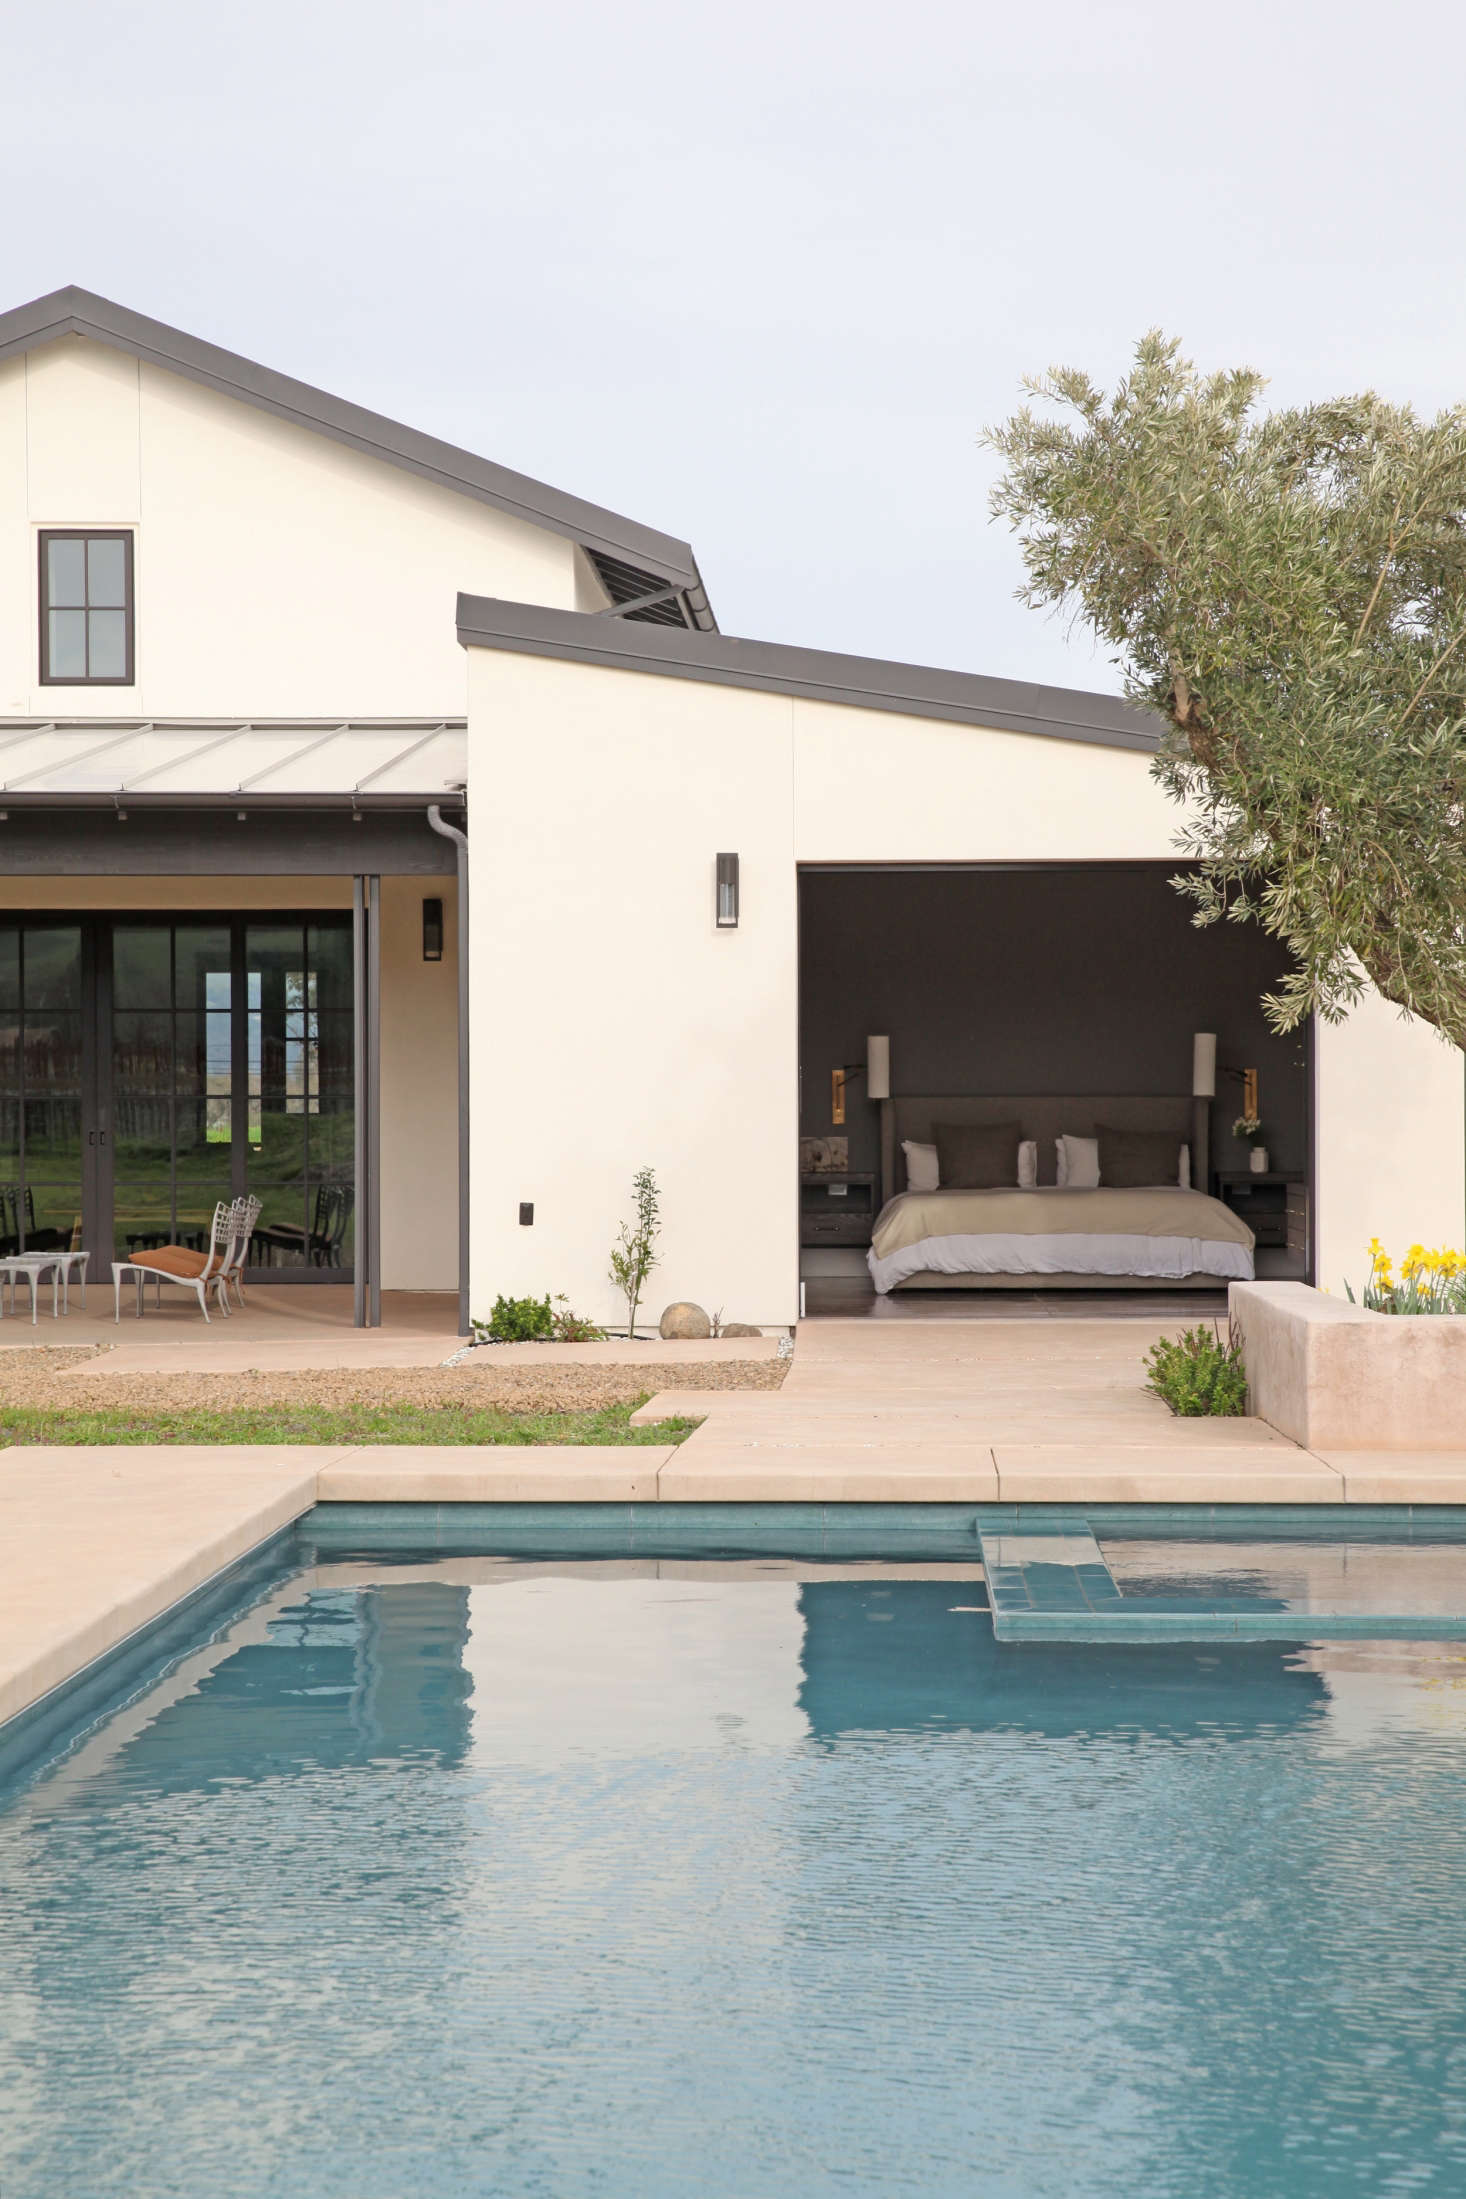 Though the landscape is still a work in progress, the pool and hot tub are ready for use. The couple&#8